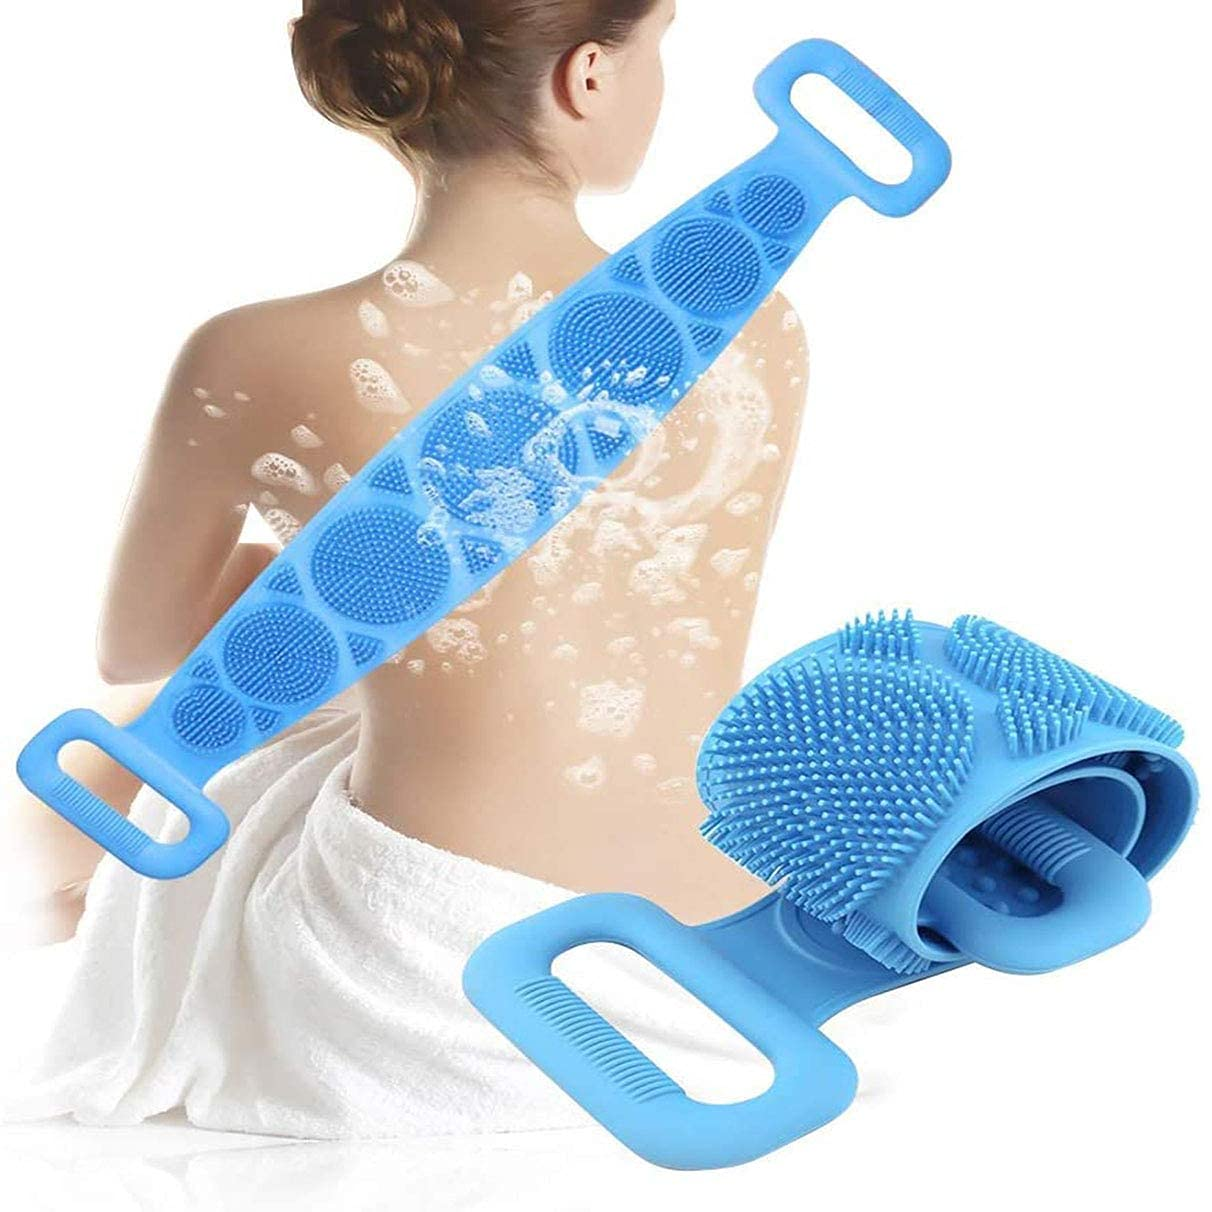 Silicone Back Scrubber Special sale item for Lengthen Shower Exfoliating Nippon regular agency